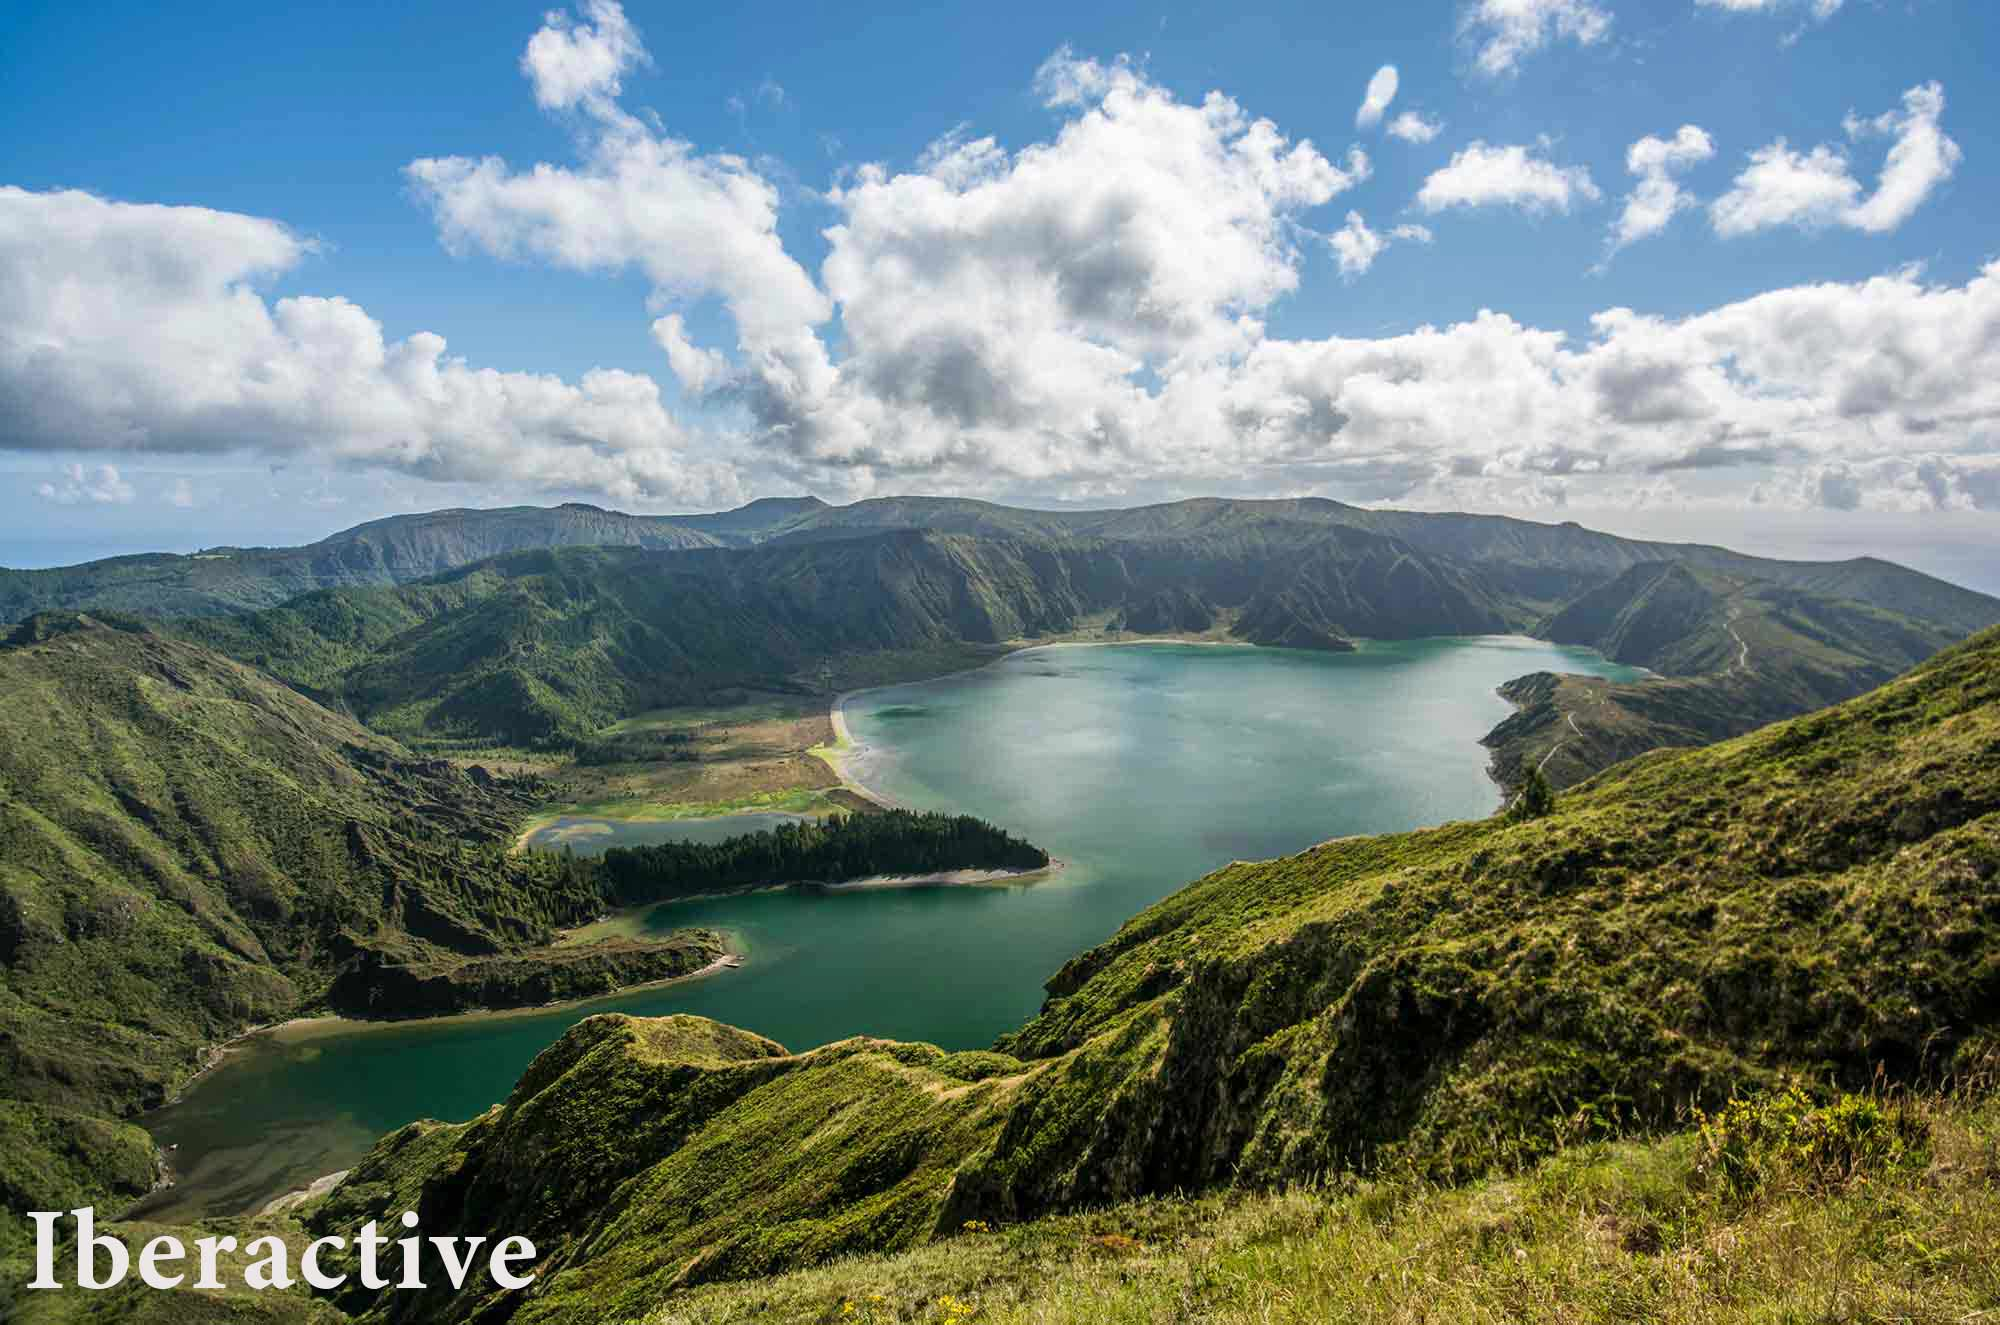 How to divide the time to spend nine days visiting the Azores?